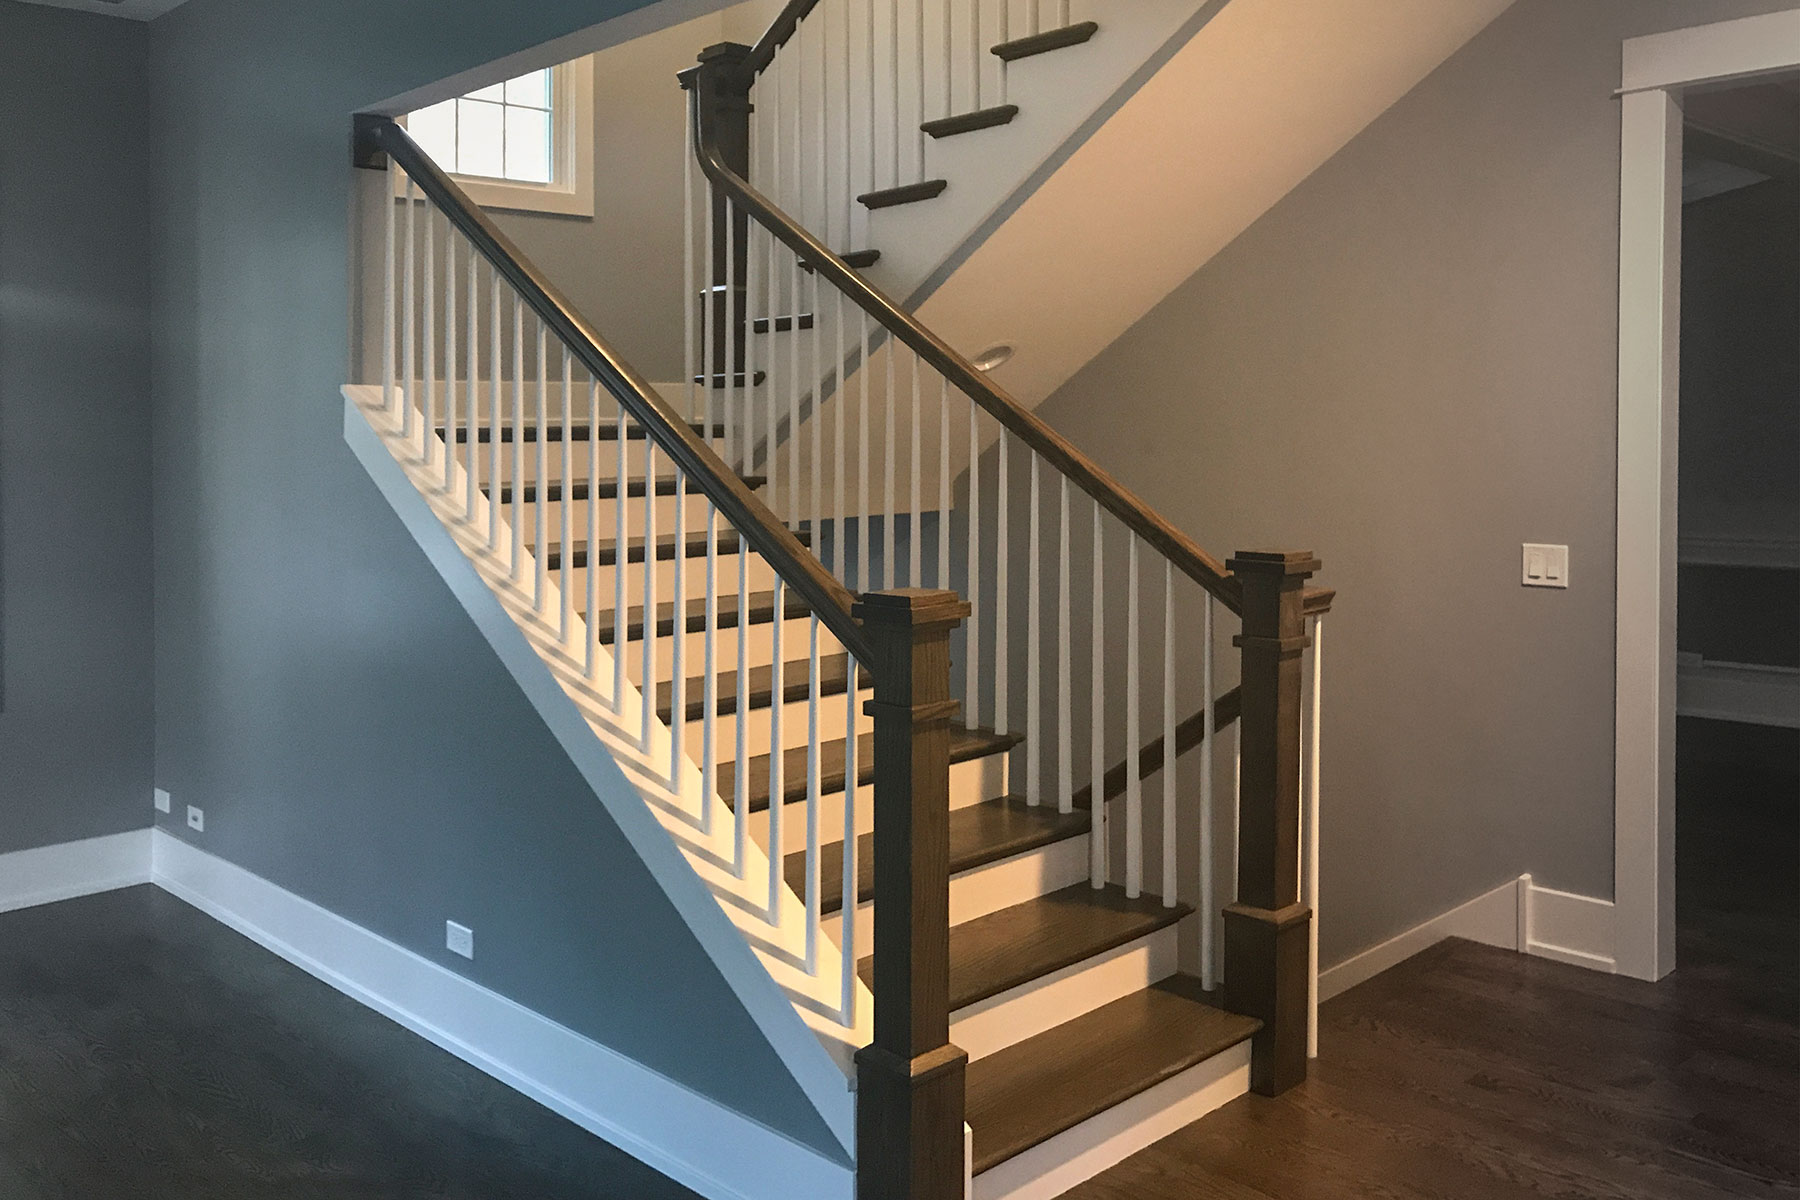 Stairs - Custom Home, Echo Lane, Glenview, IL Custom Home. America's Custom Home Builders: New Construction, Remodeling, Restoration Services. Residential and Commercial.